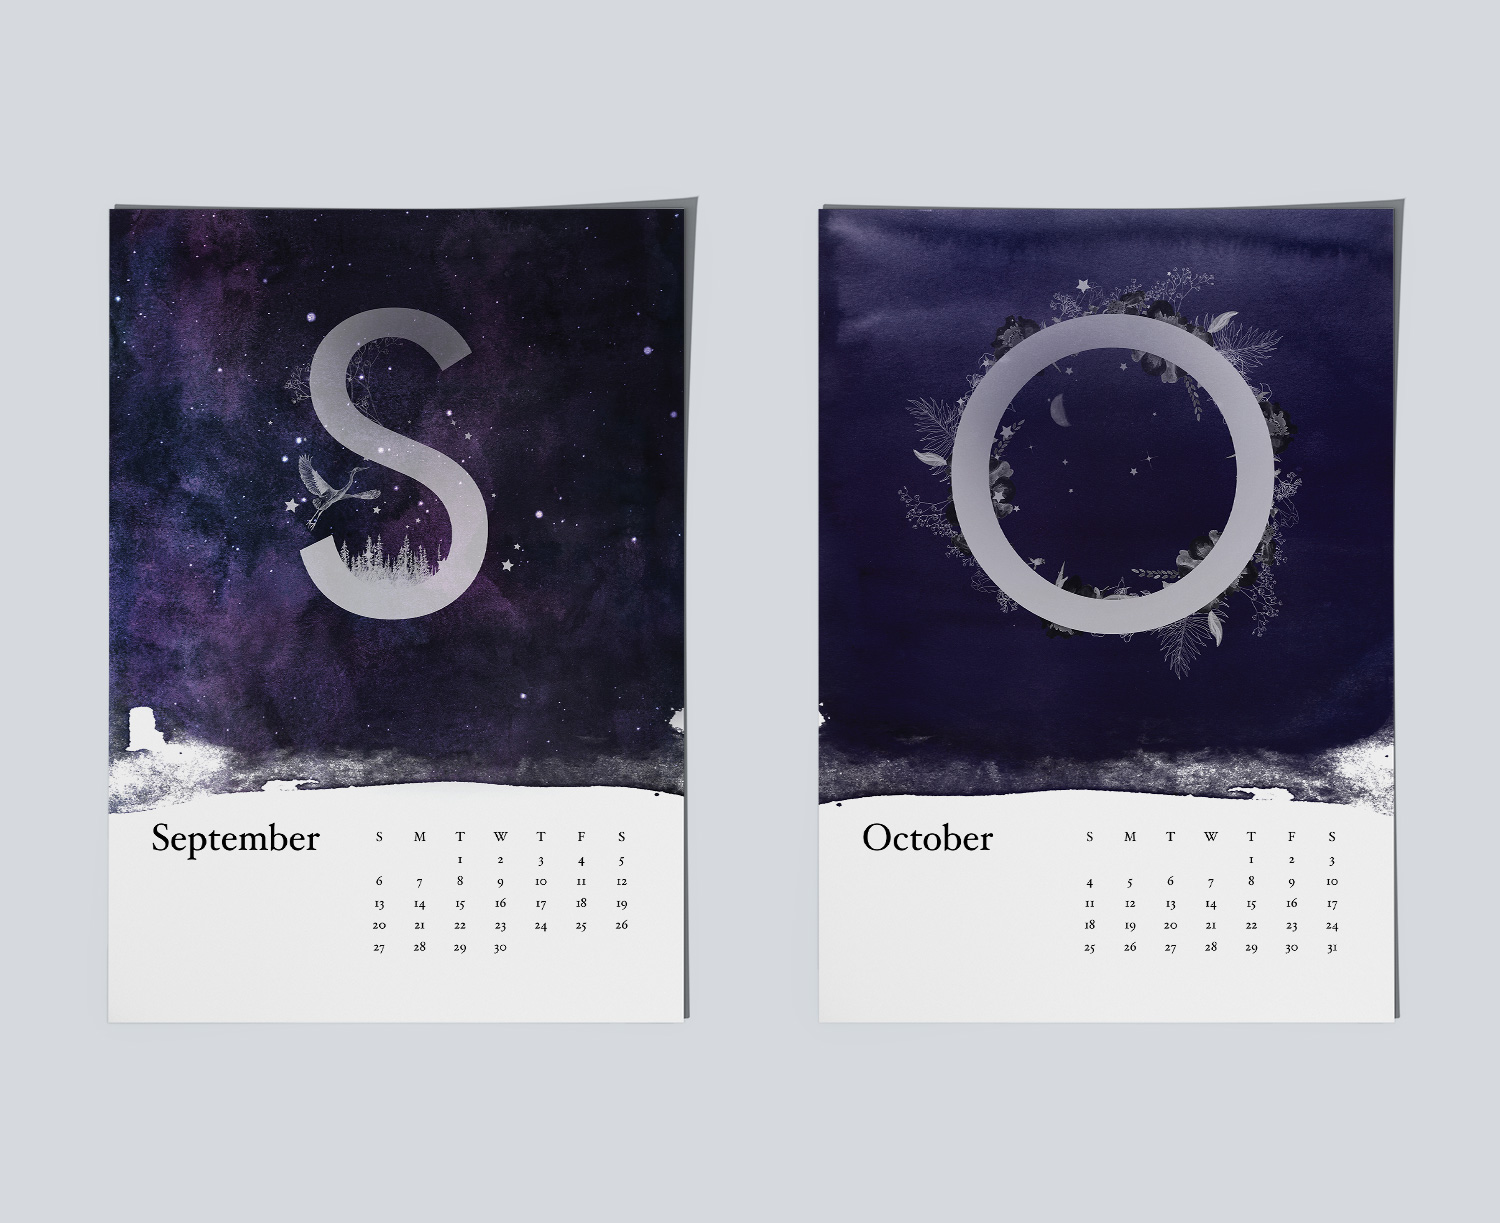 Example of magical night sky paintings for calendar.Example of magical night sky paintings for September and October months.